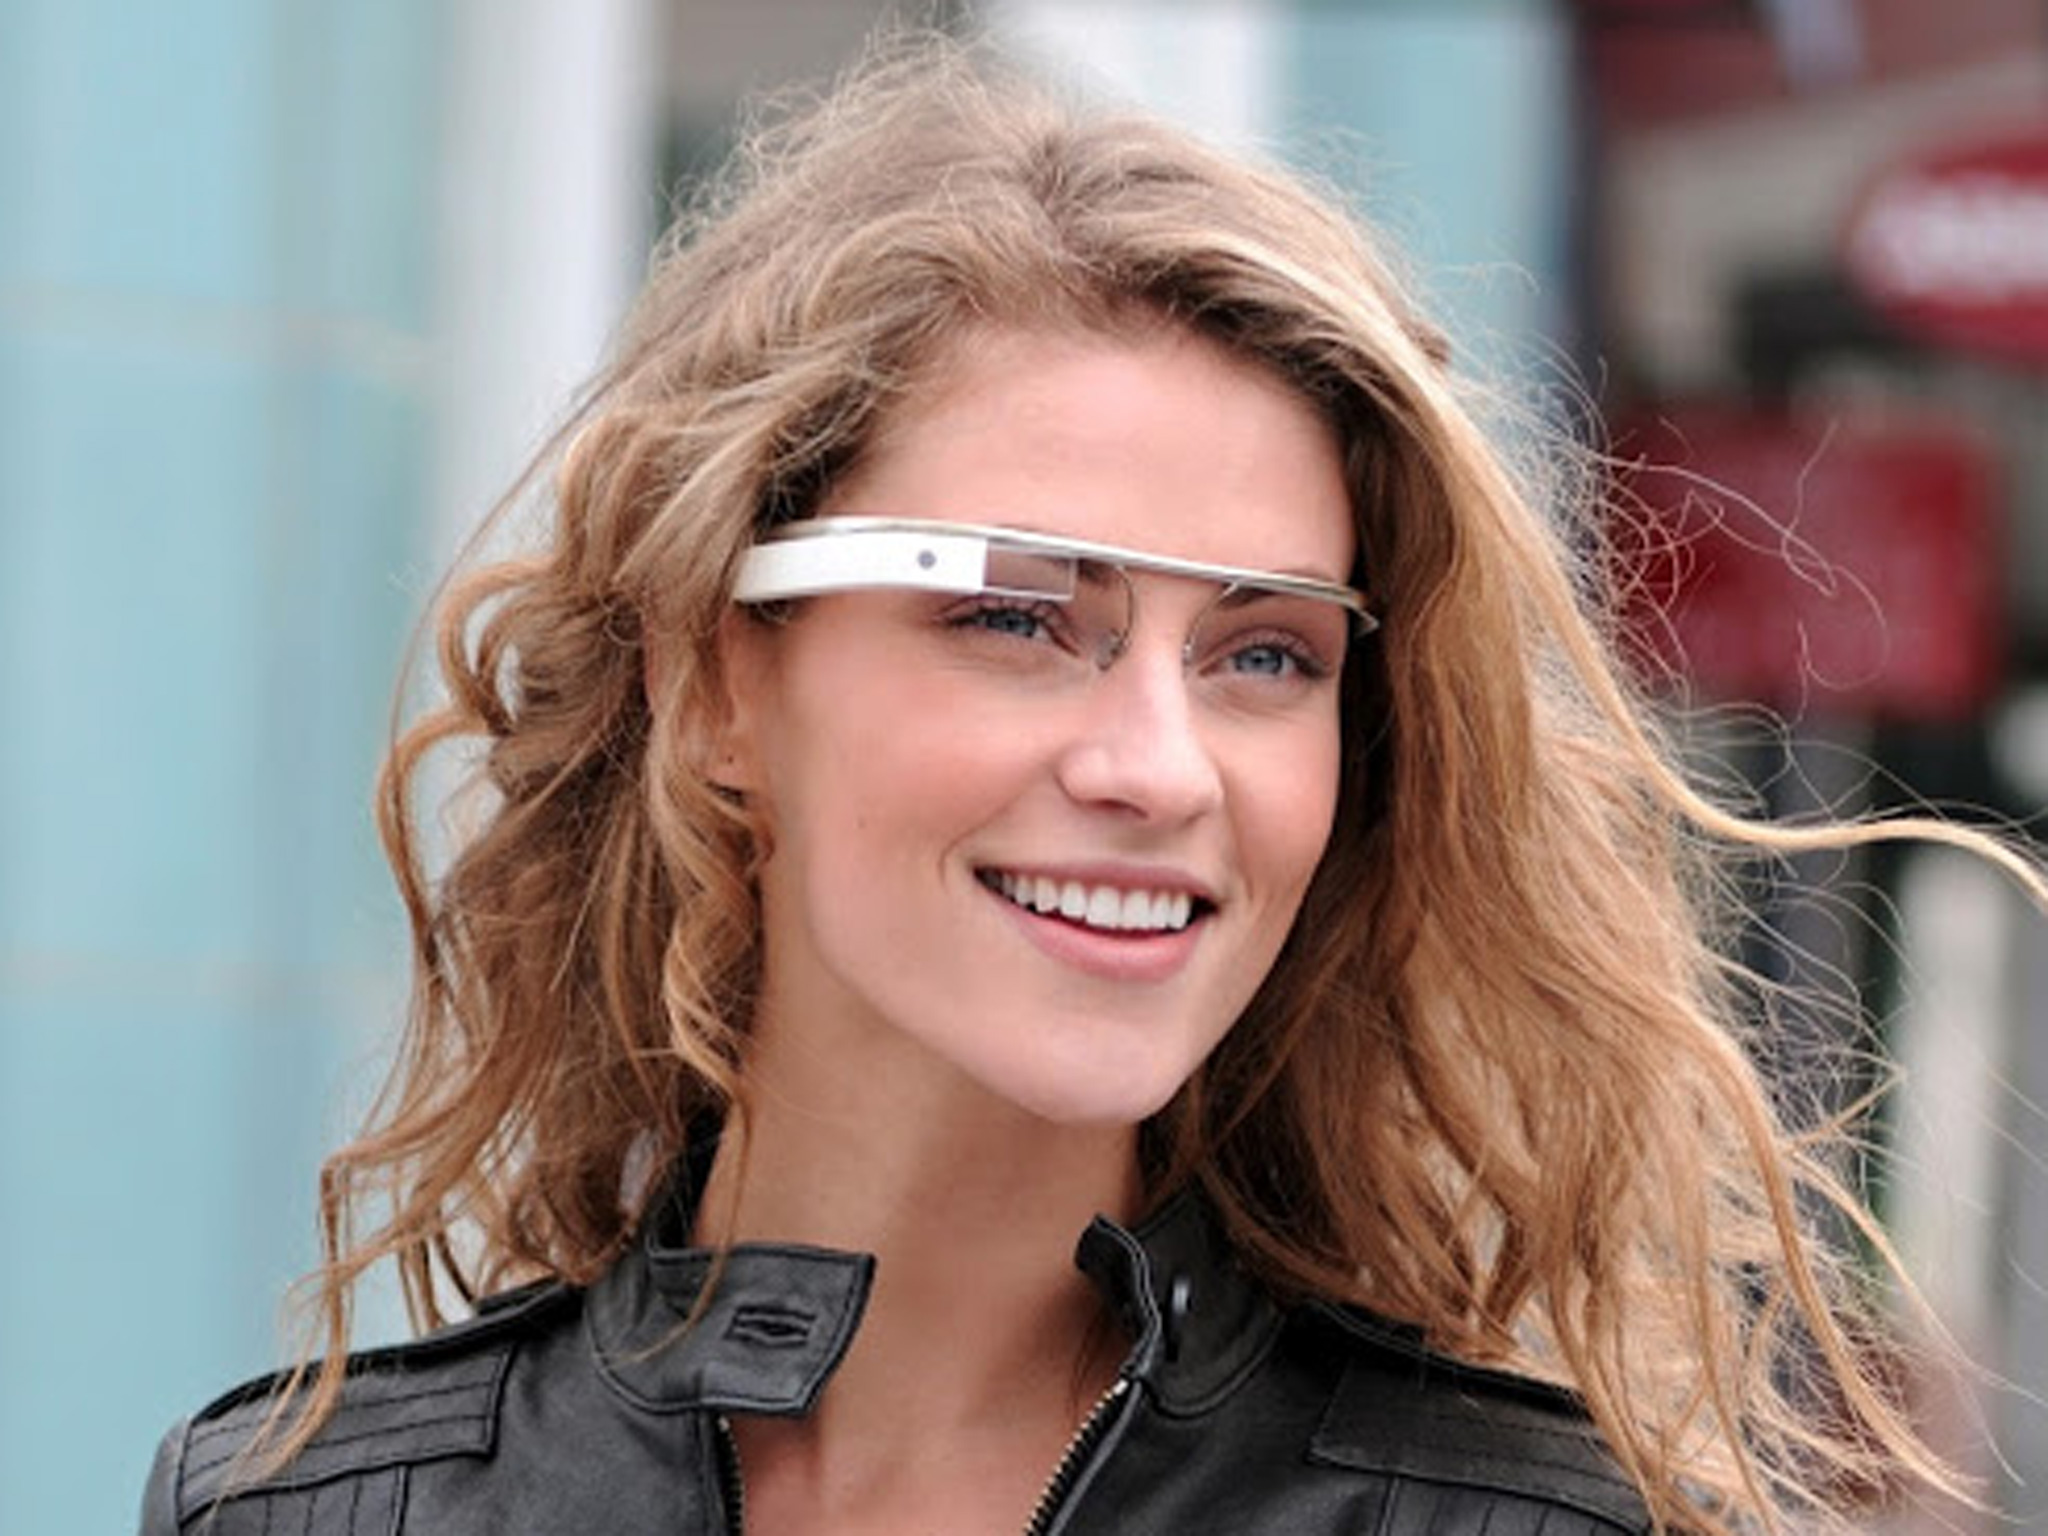 Google_Glasses1